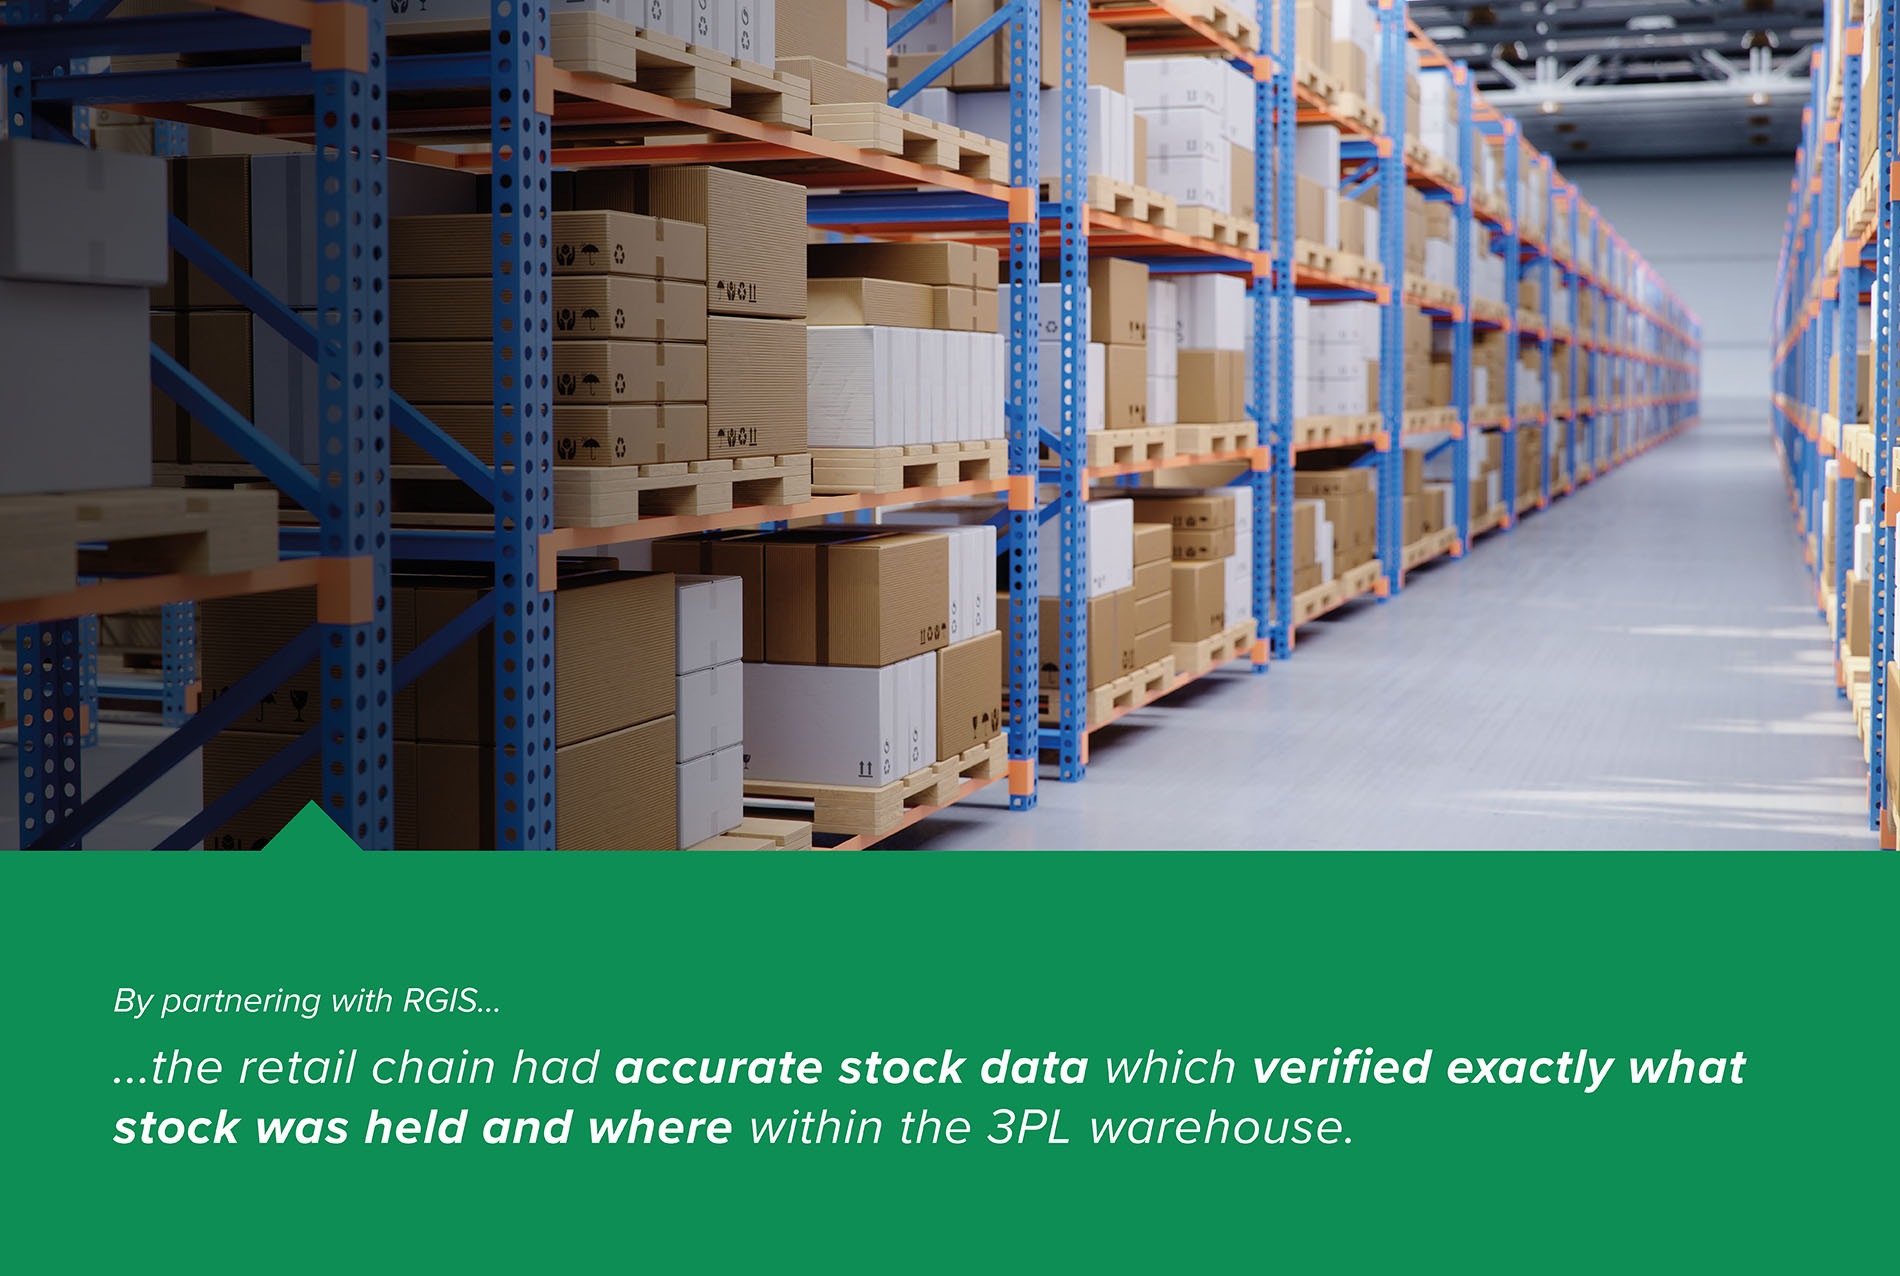 Fashion, Food and Hardware Retailer 3PL Warehouse Count